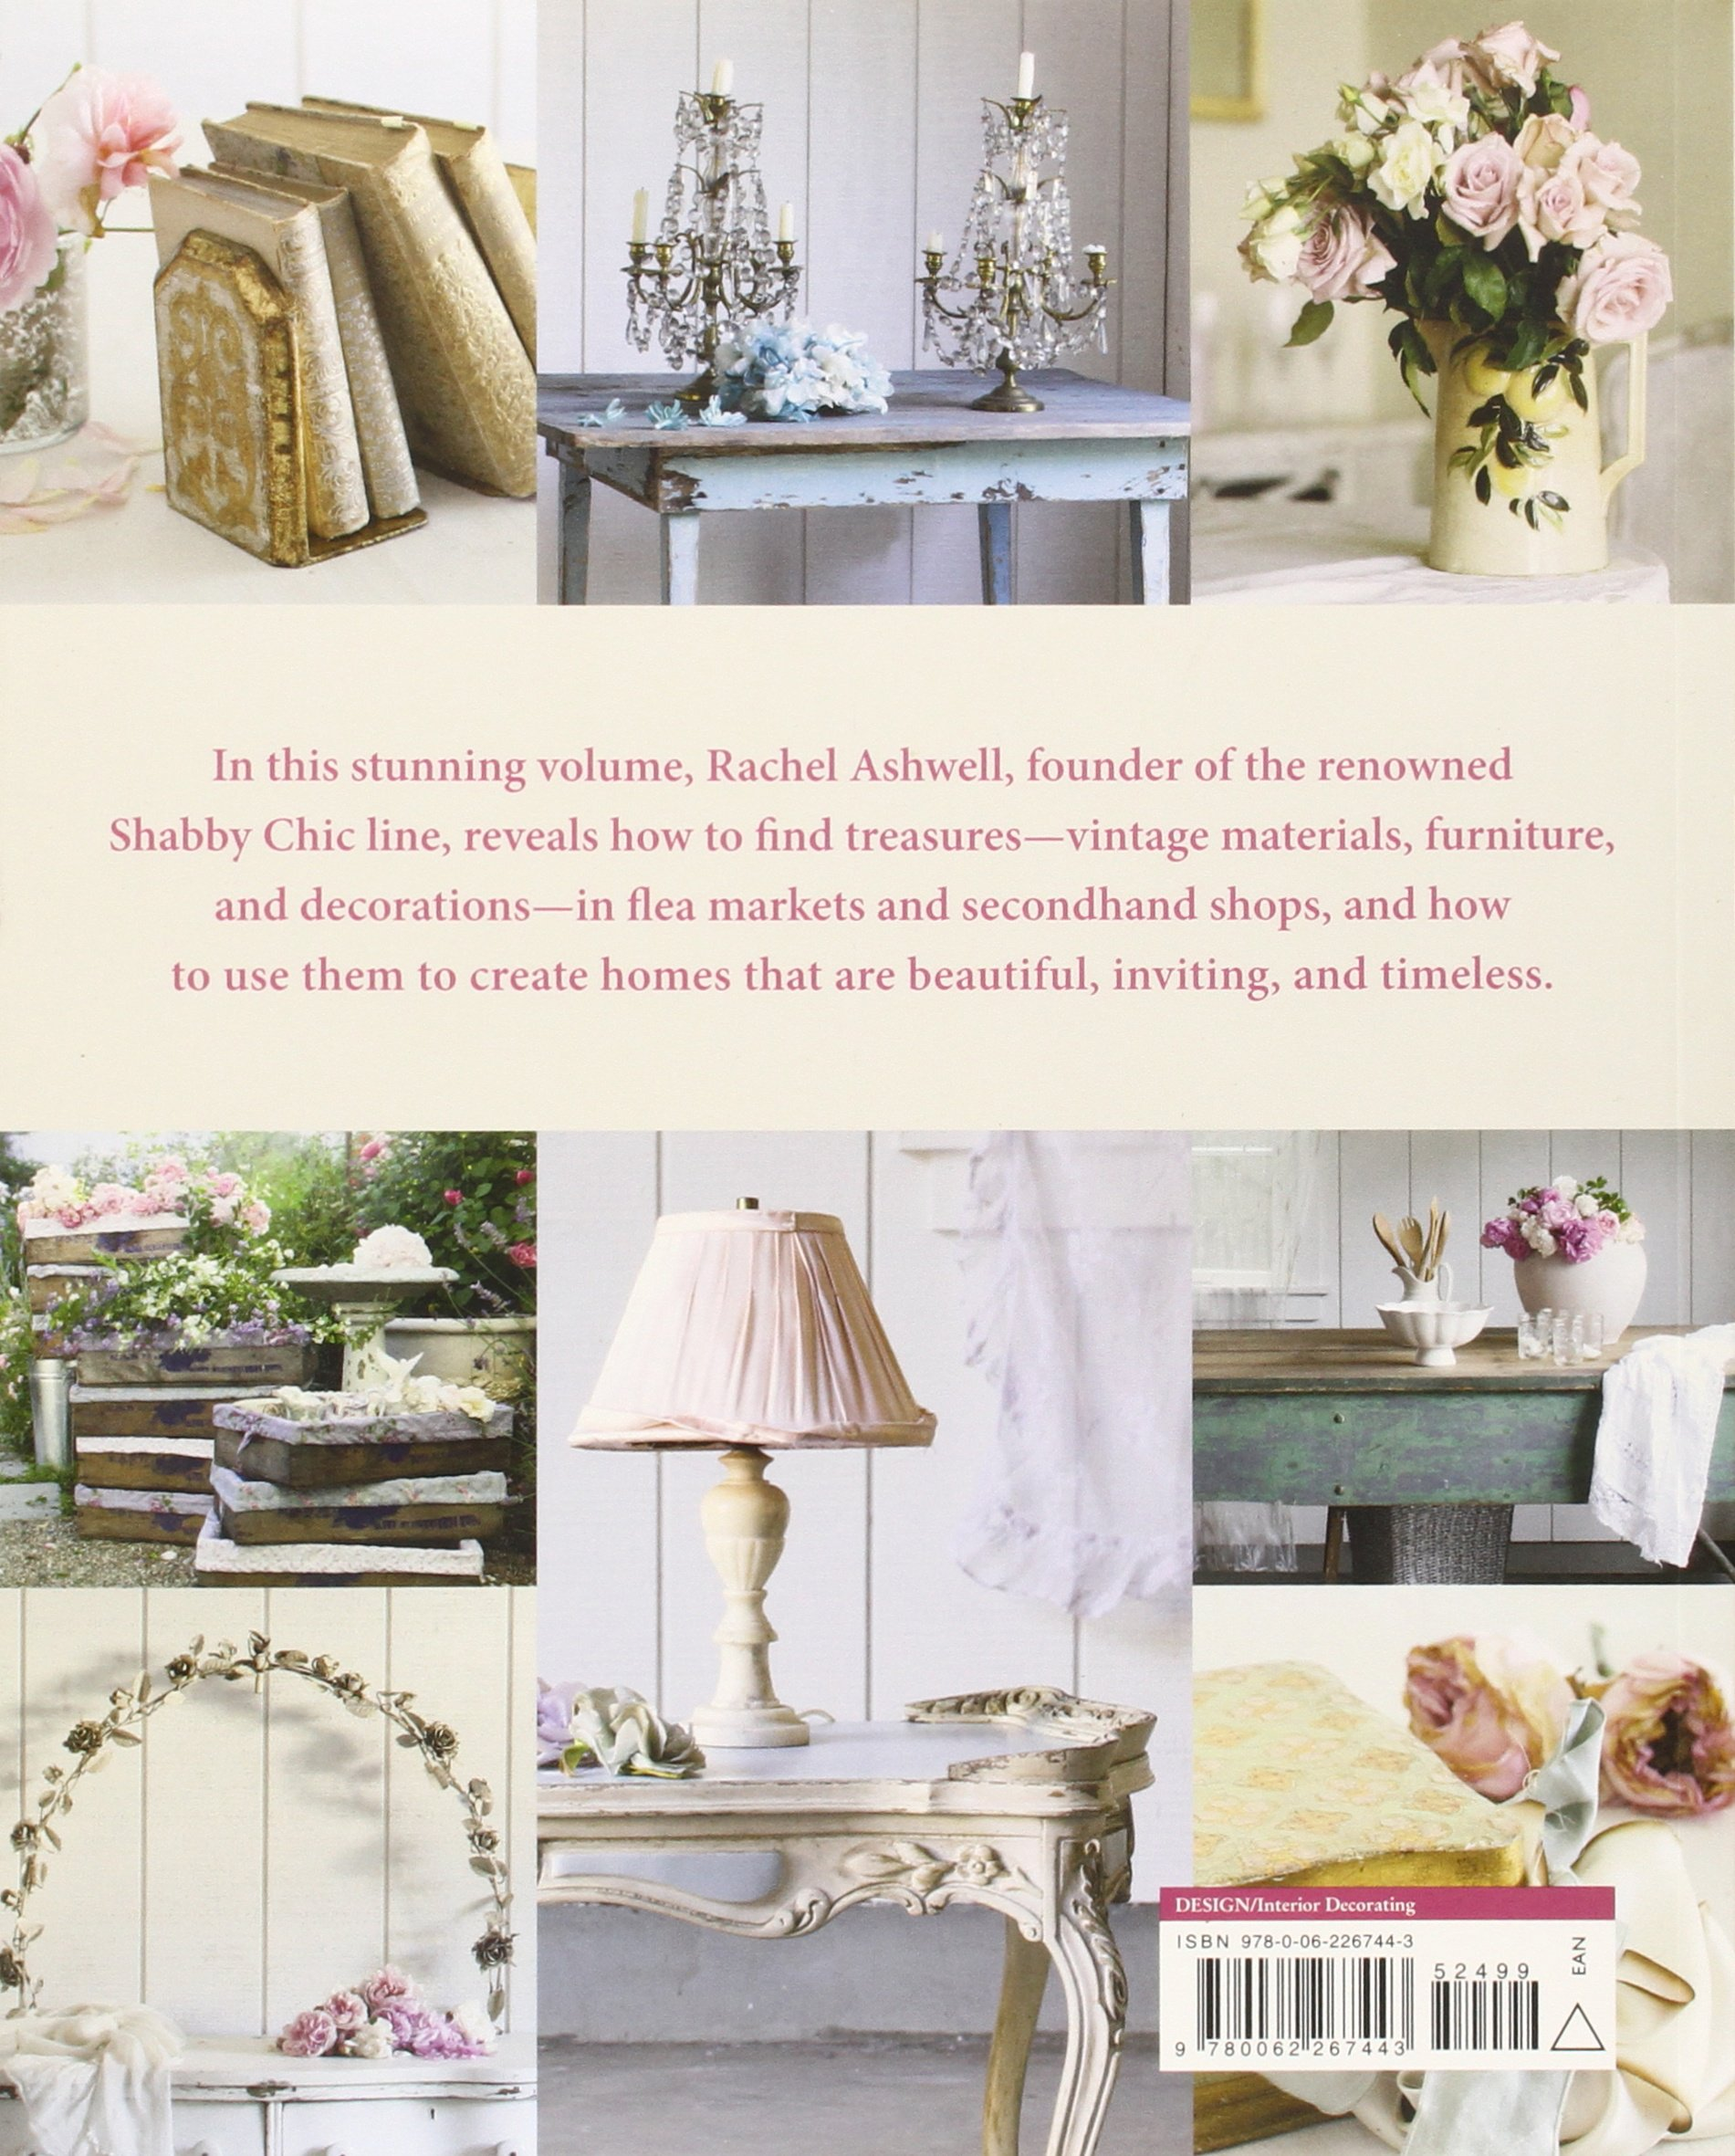 Rachel Ashwellu0027s Shabby Chic Treasure Hunting And Decorating Guide: Rachel  Ashwell: 9780062267443: Amazon.com: Books